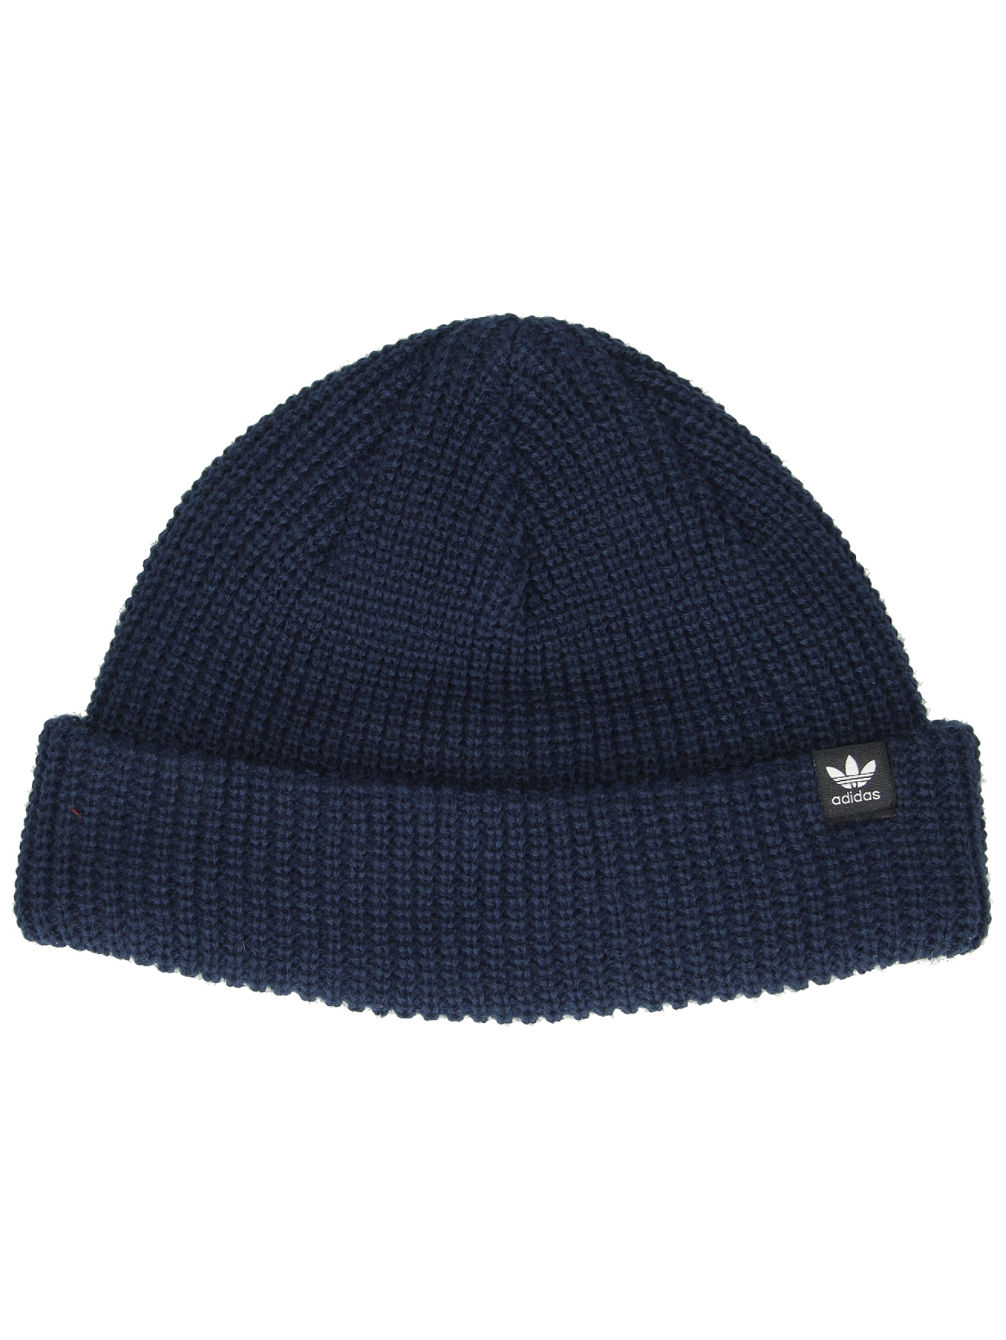 Buy adidas Originals Short Fisherman Beanie online at blue-tomato.com af145c9f690